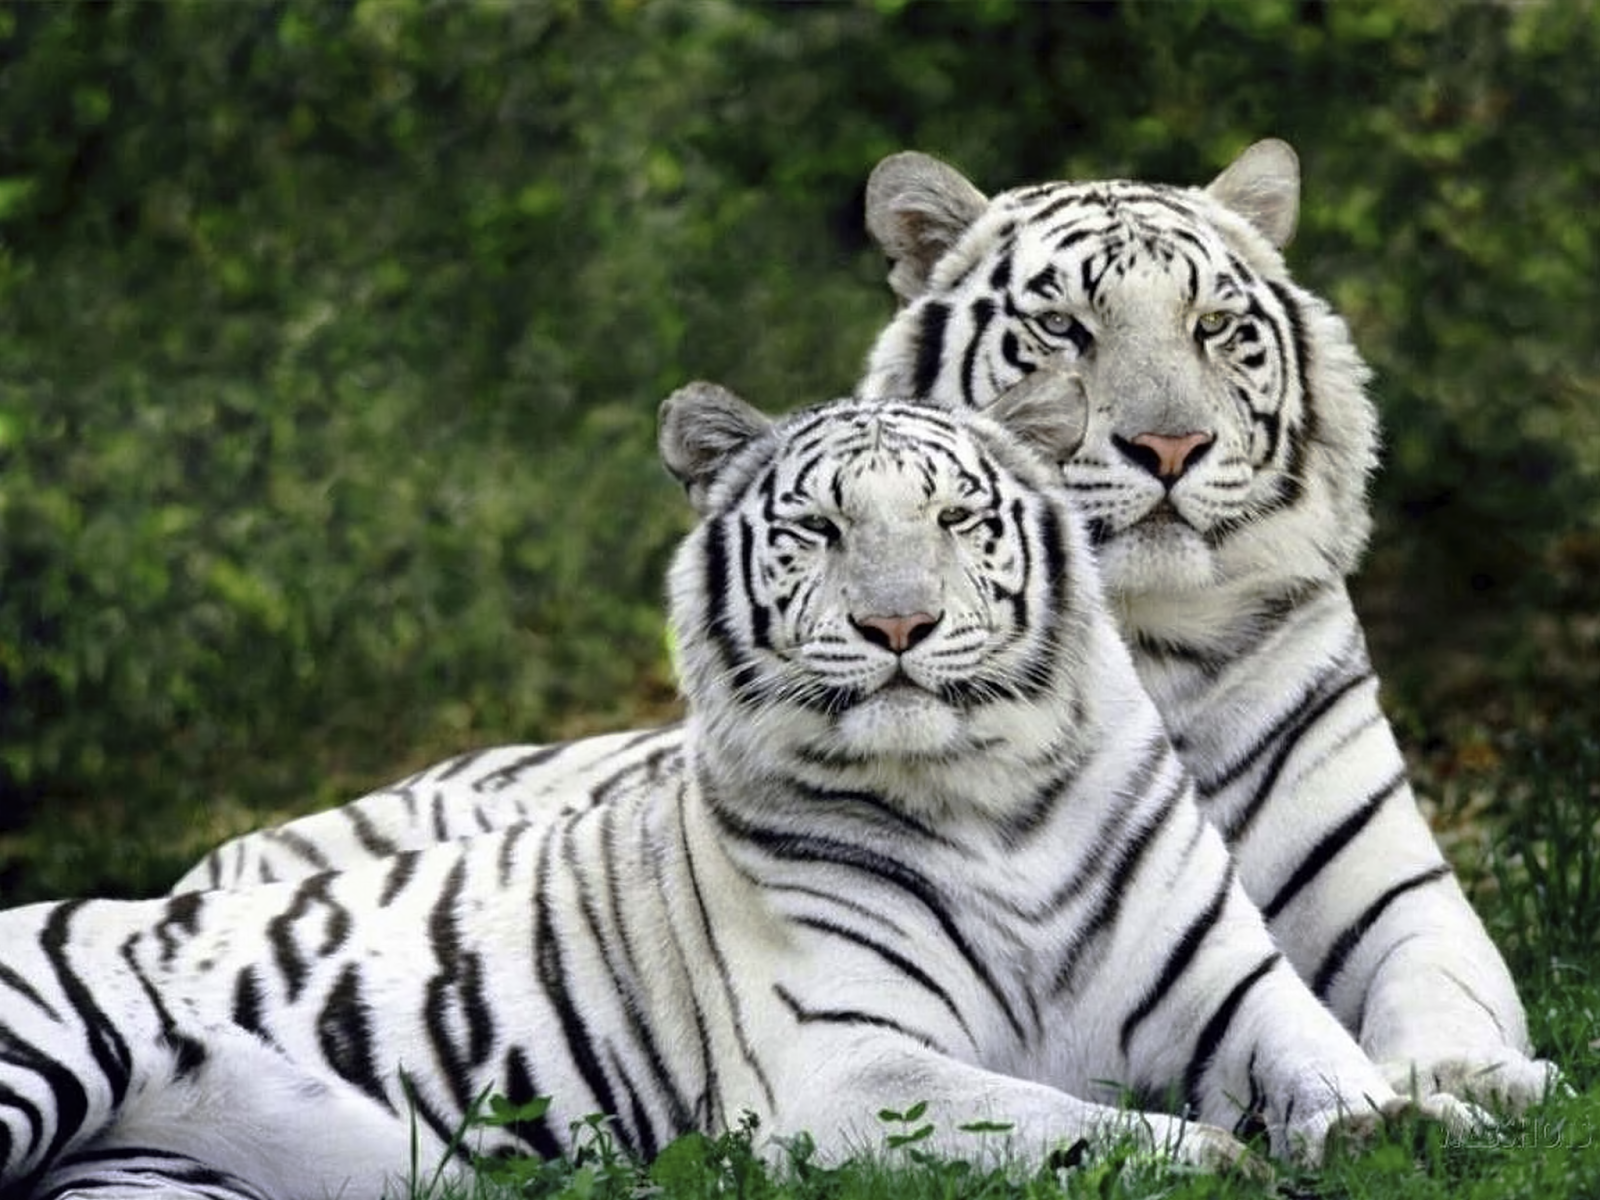 WhiteTiger0105.png 6000x4500x24(RGB) #white #tiger  #animal #endangered #predator #majestic